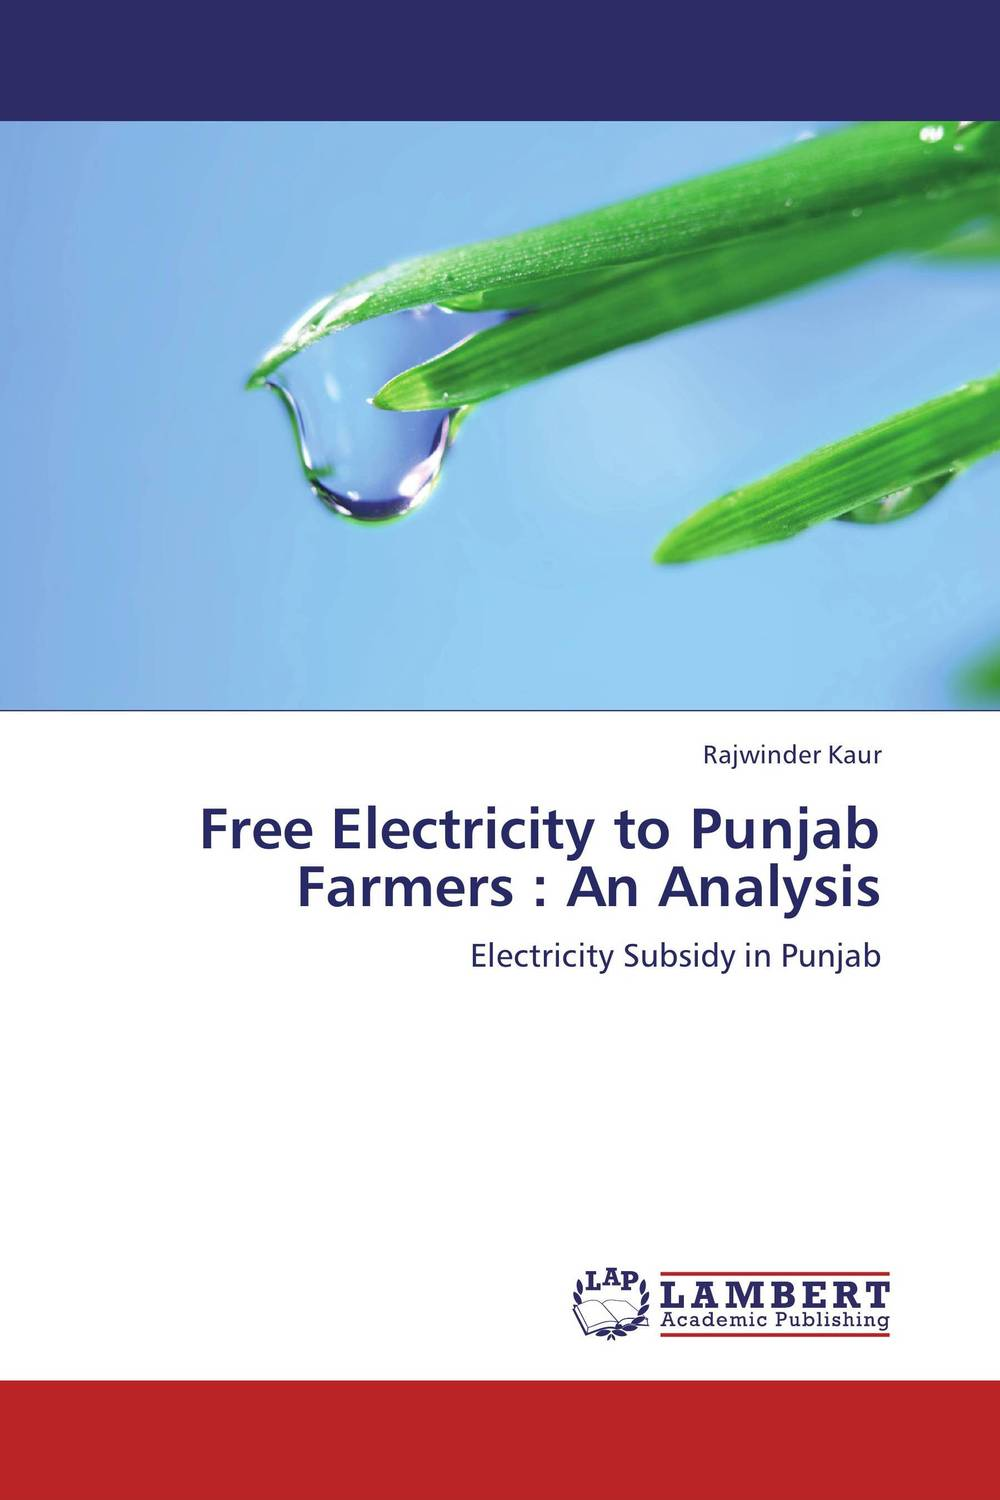 Free Electricity to Punjab Farmers : An Analysis community resilience of village udekaran punjab india